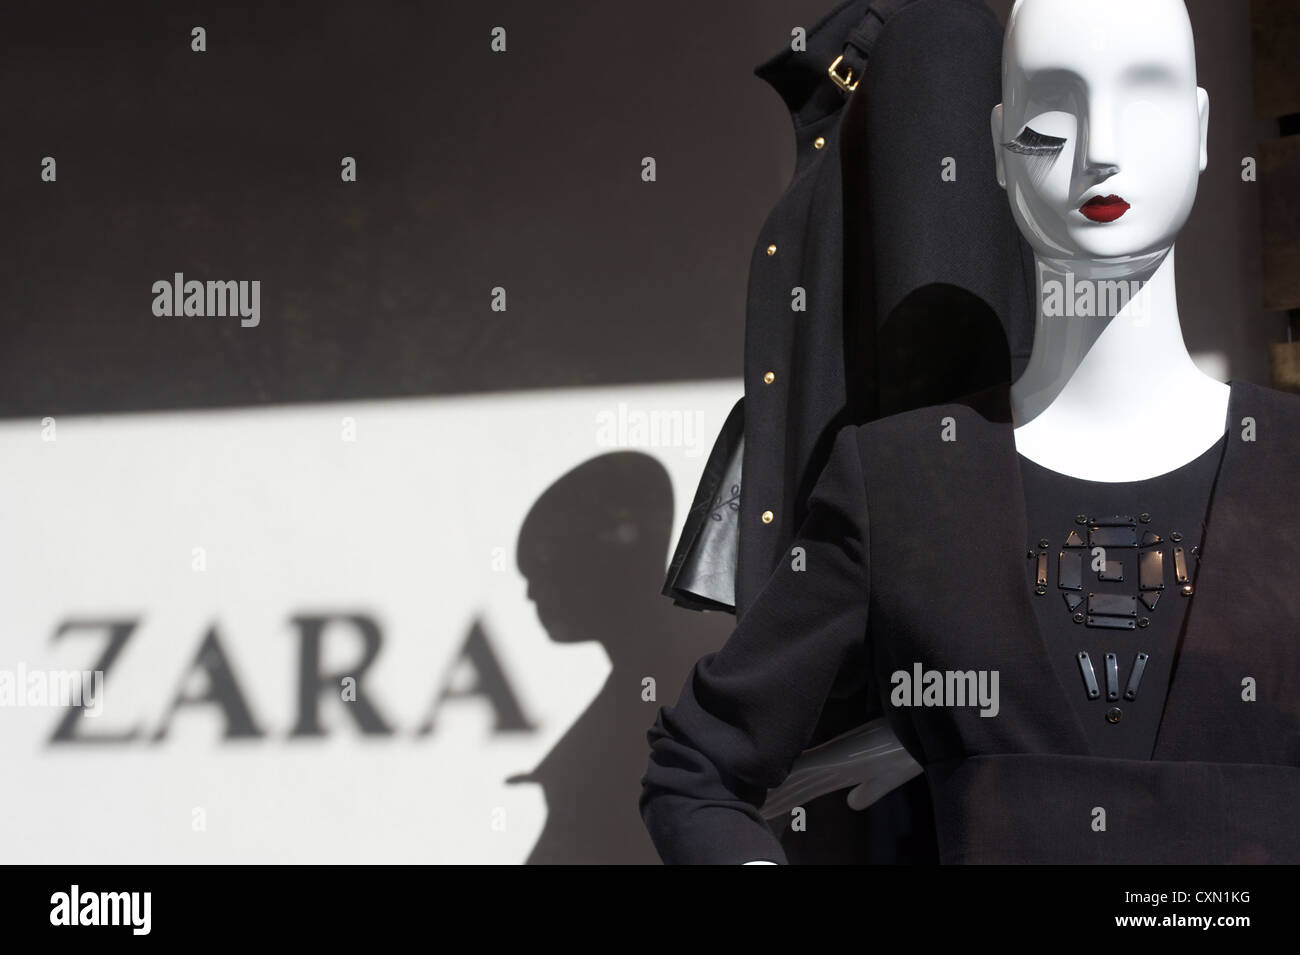 Zara clothing and accessory shop - Stock Image